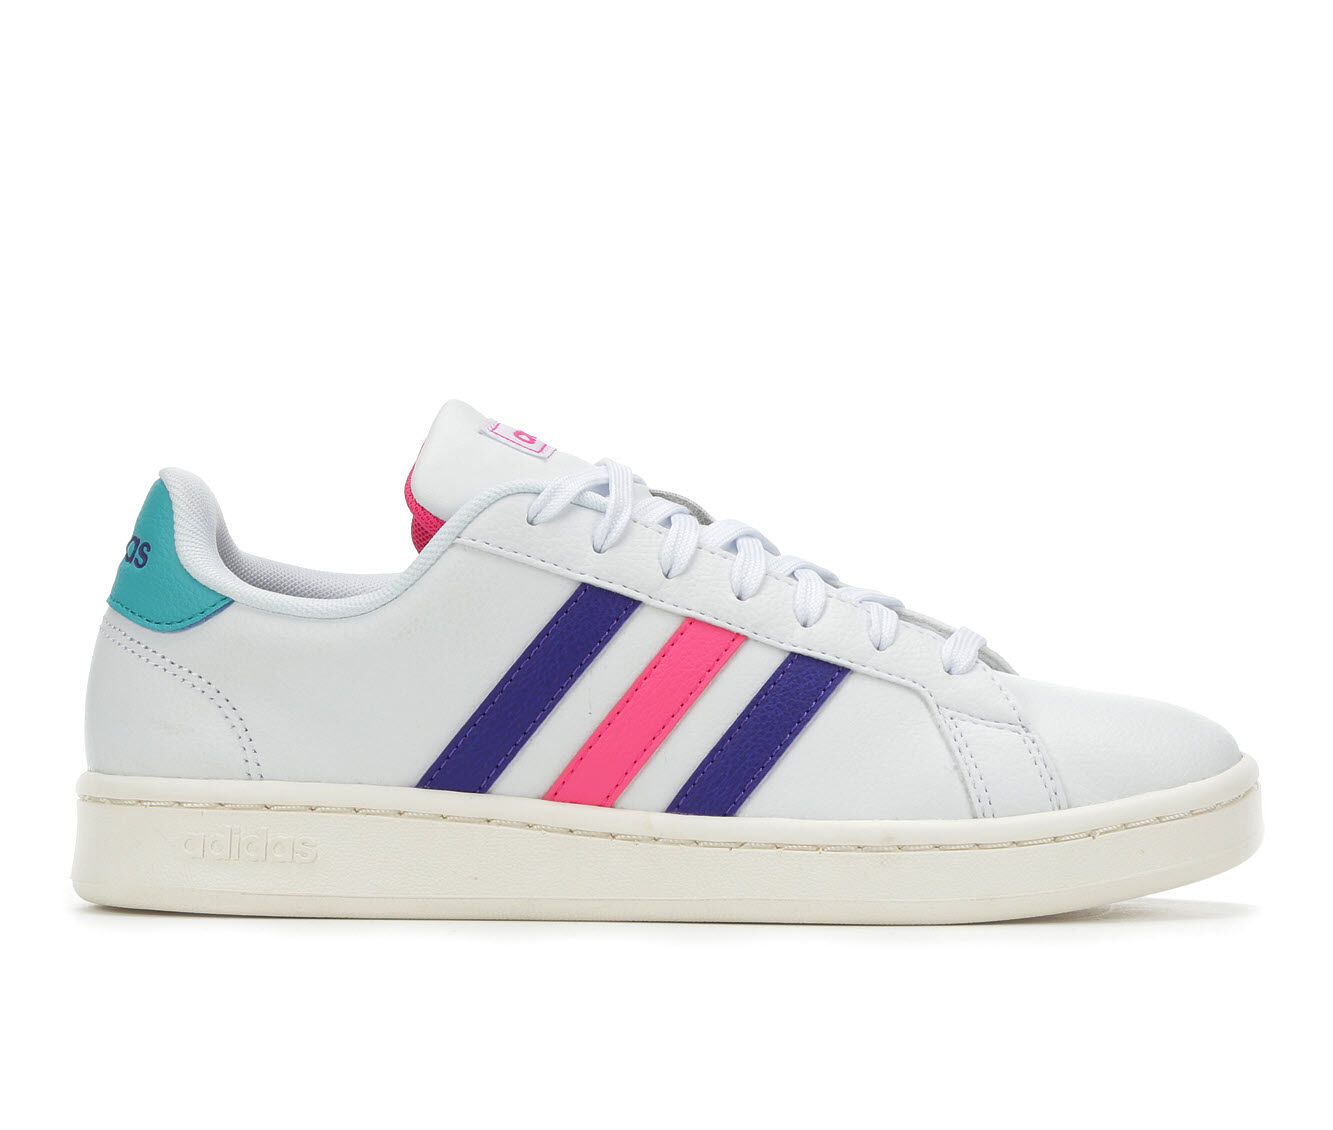 Adidas Shoes, Sneakers & Accessories